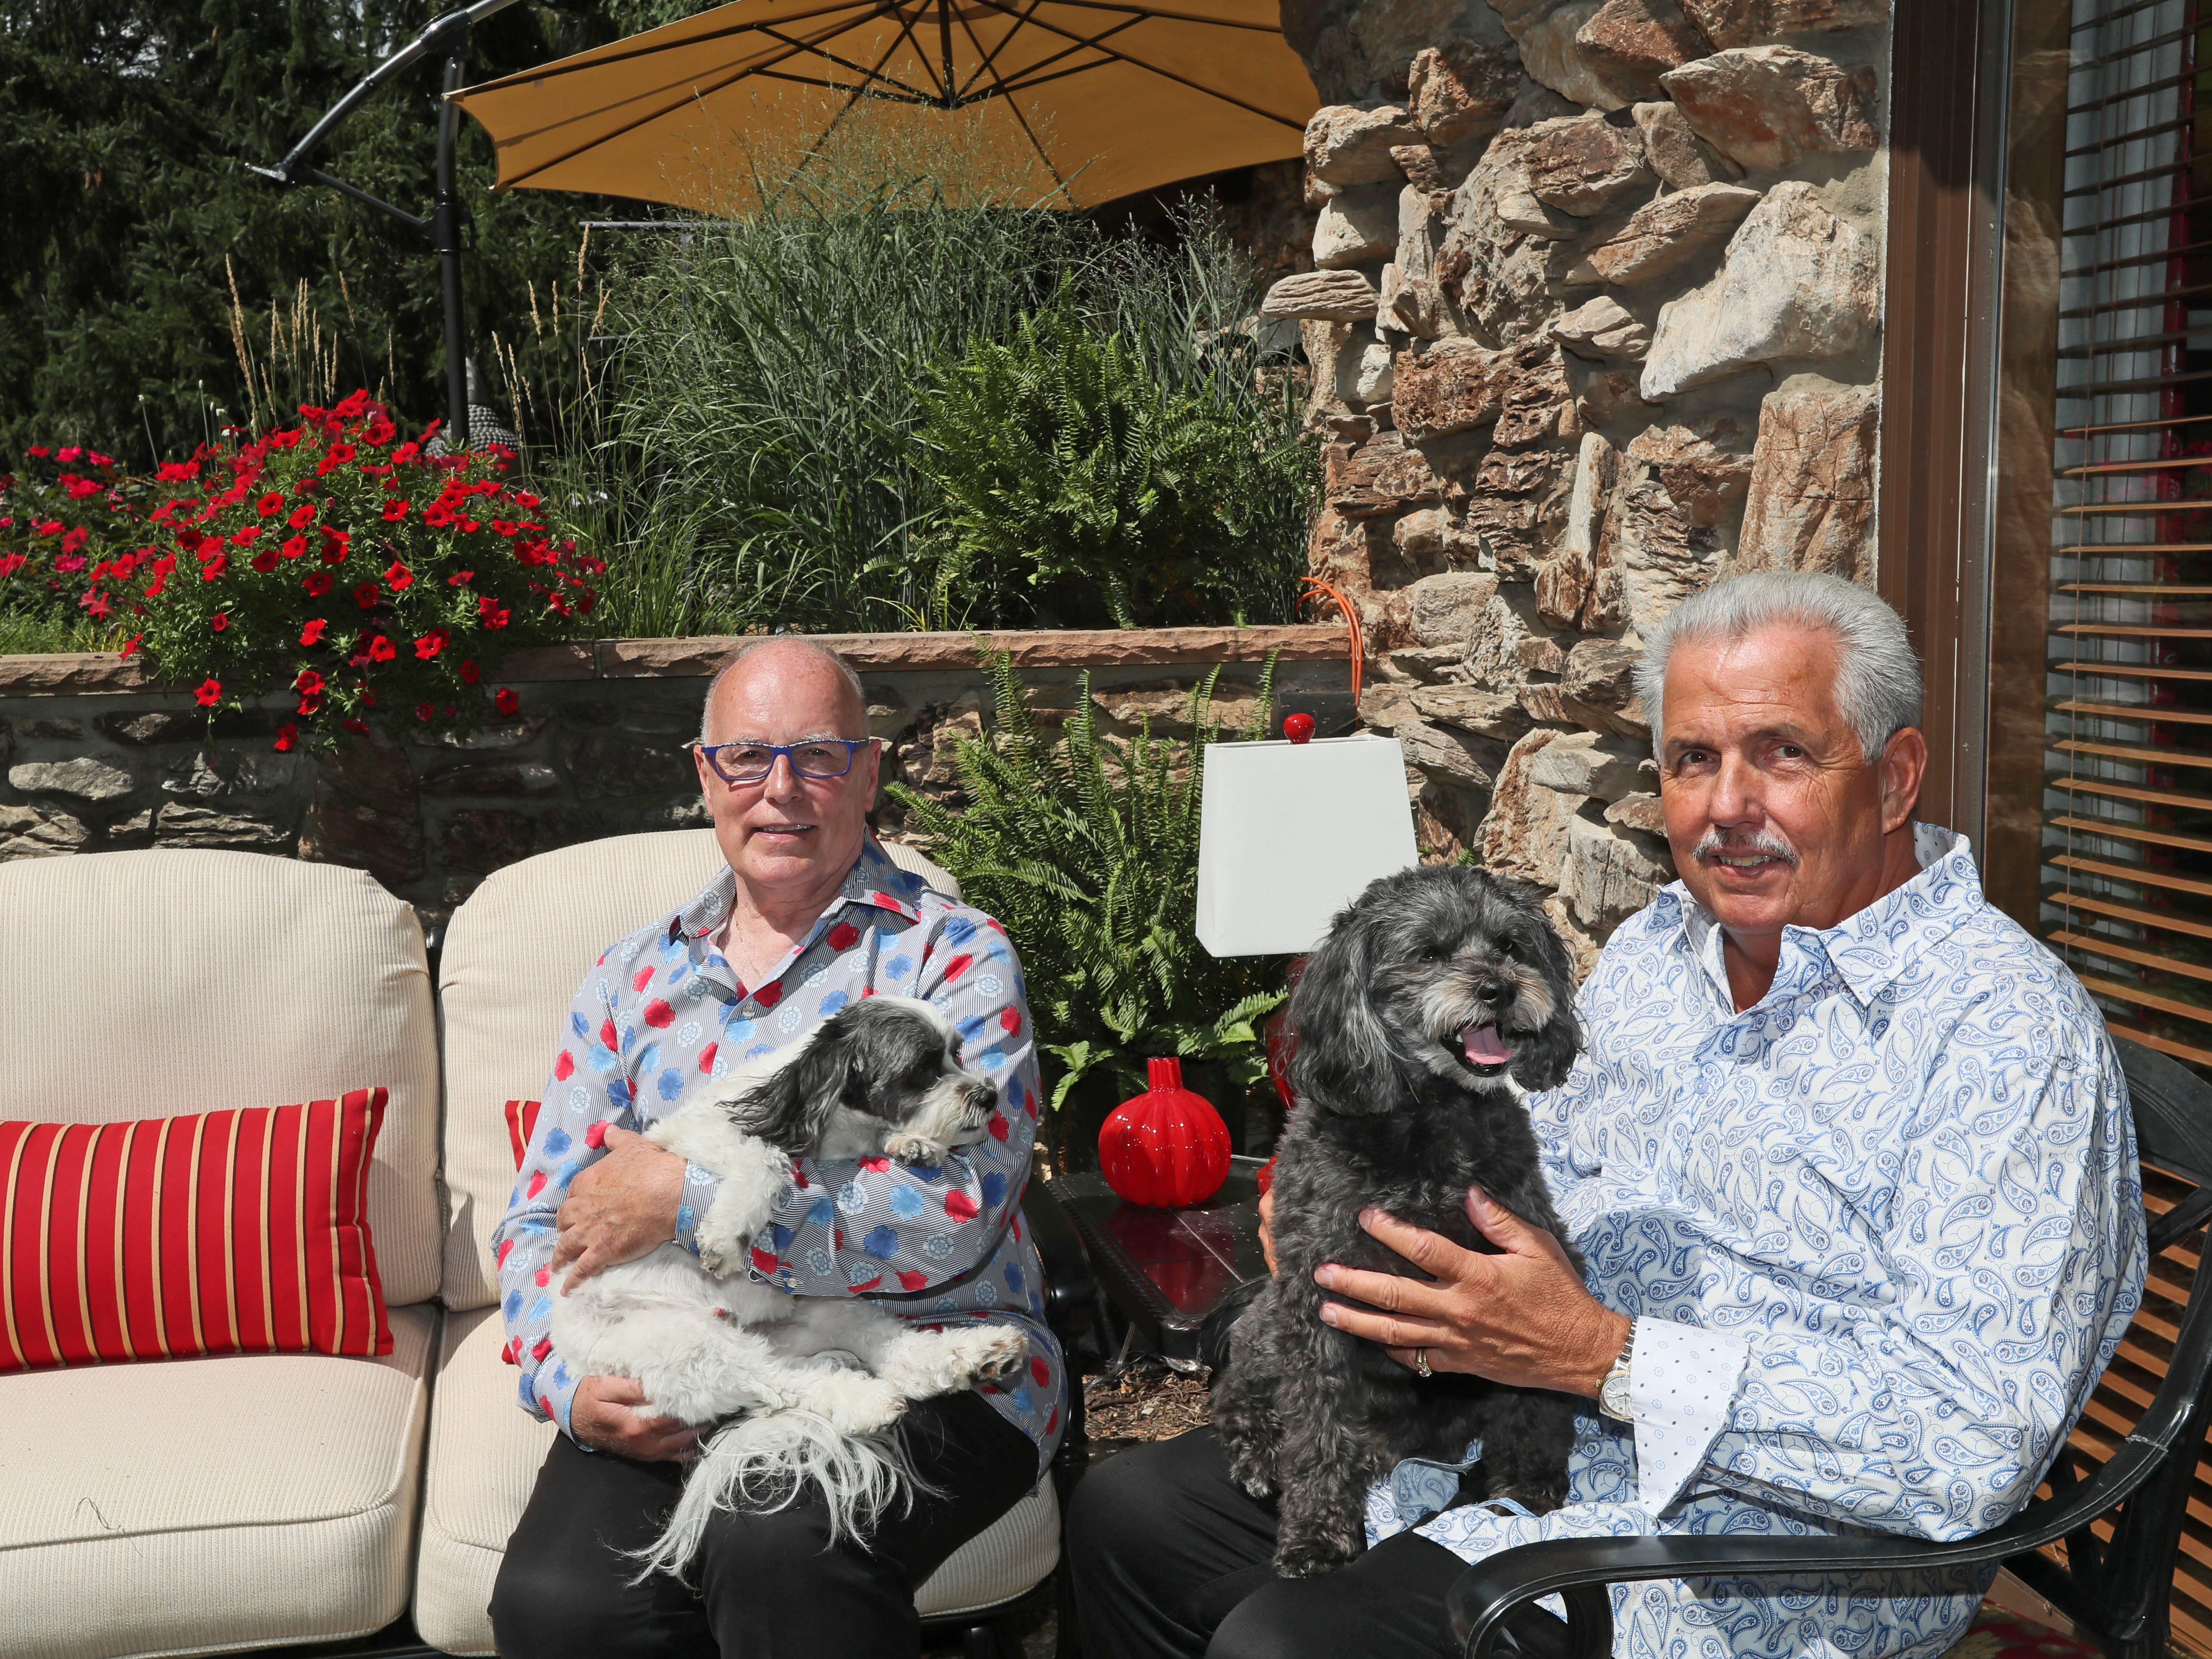 Aubrey Johnson (right), holding the dog Bear, and Jerry Meidl (left) holding the dog Panda, relax on one of the patios at their West Allis home.